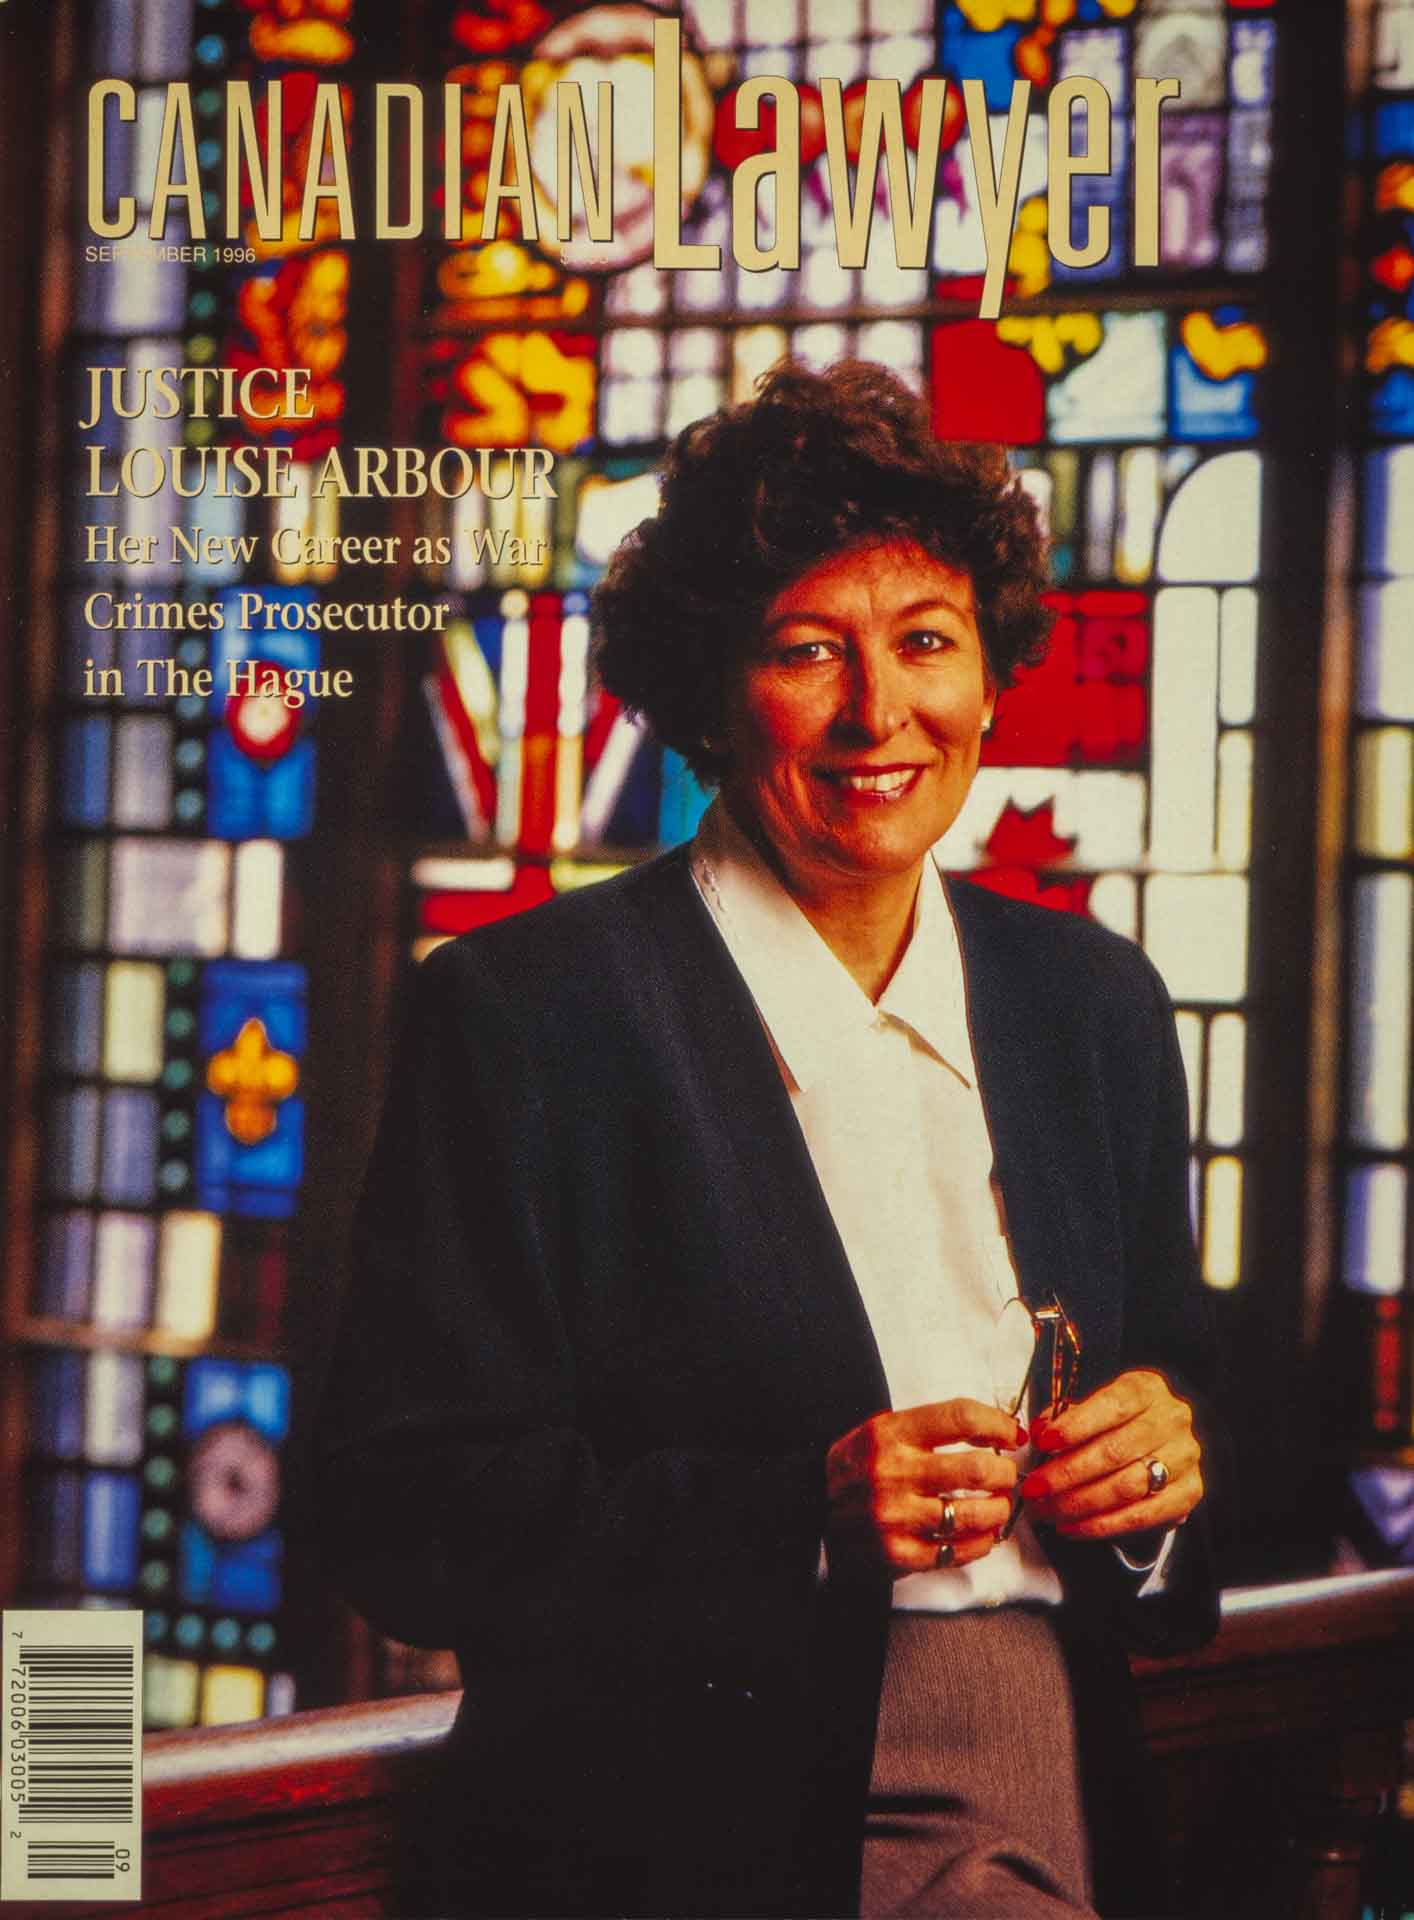 Justice Louise Arbour